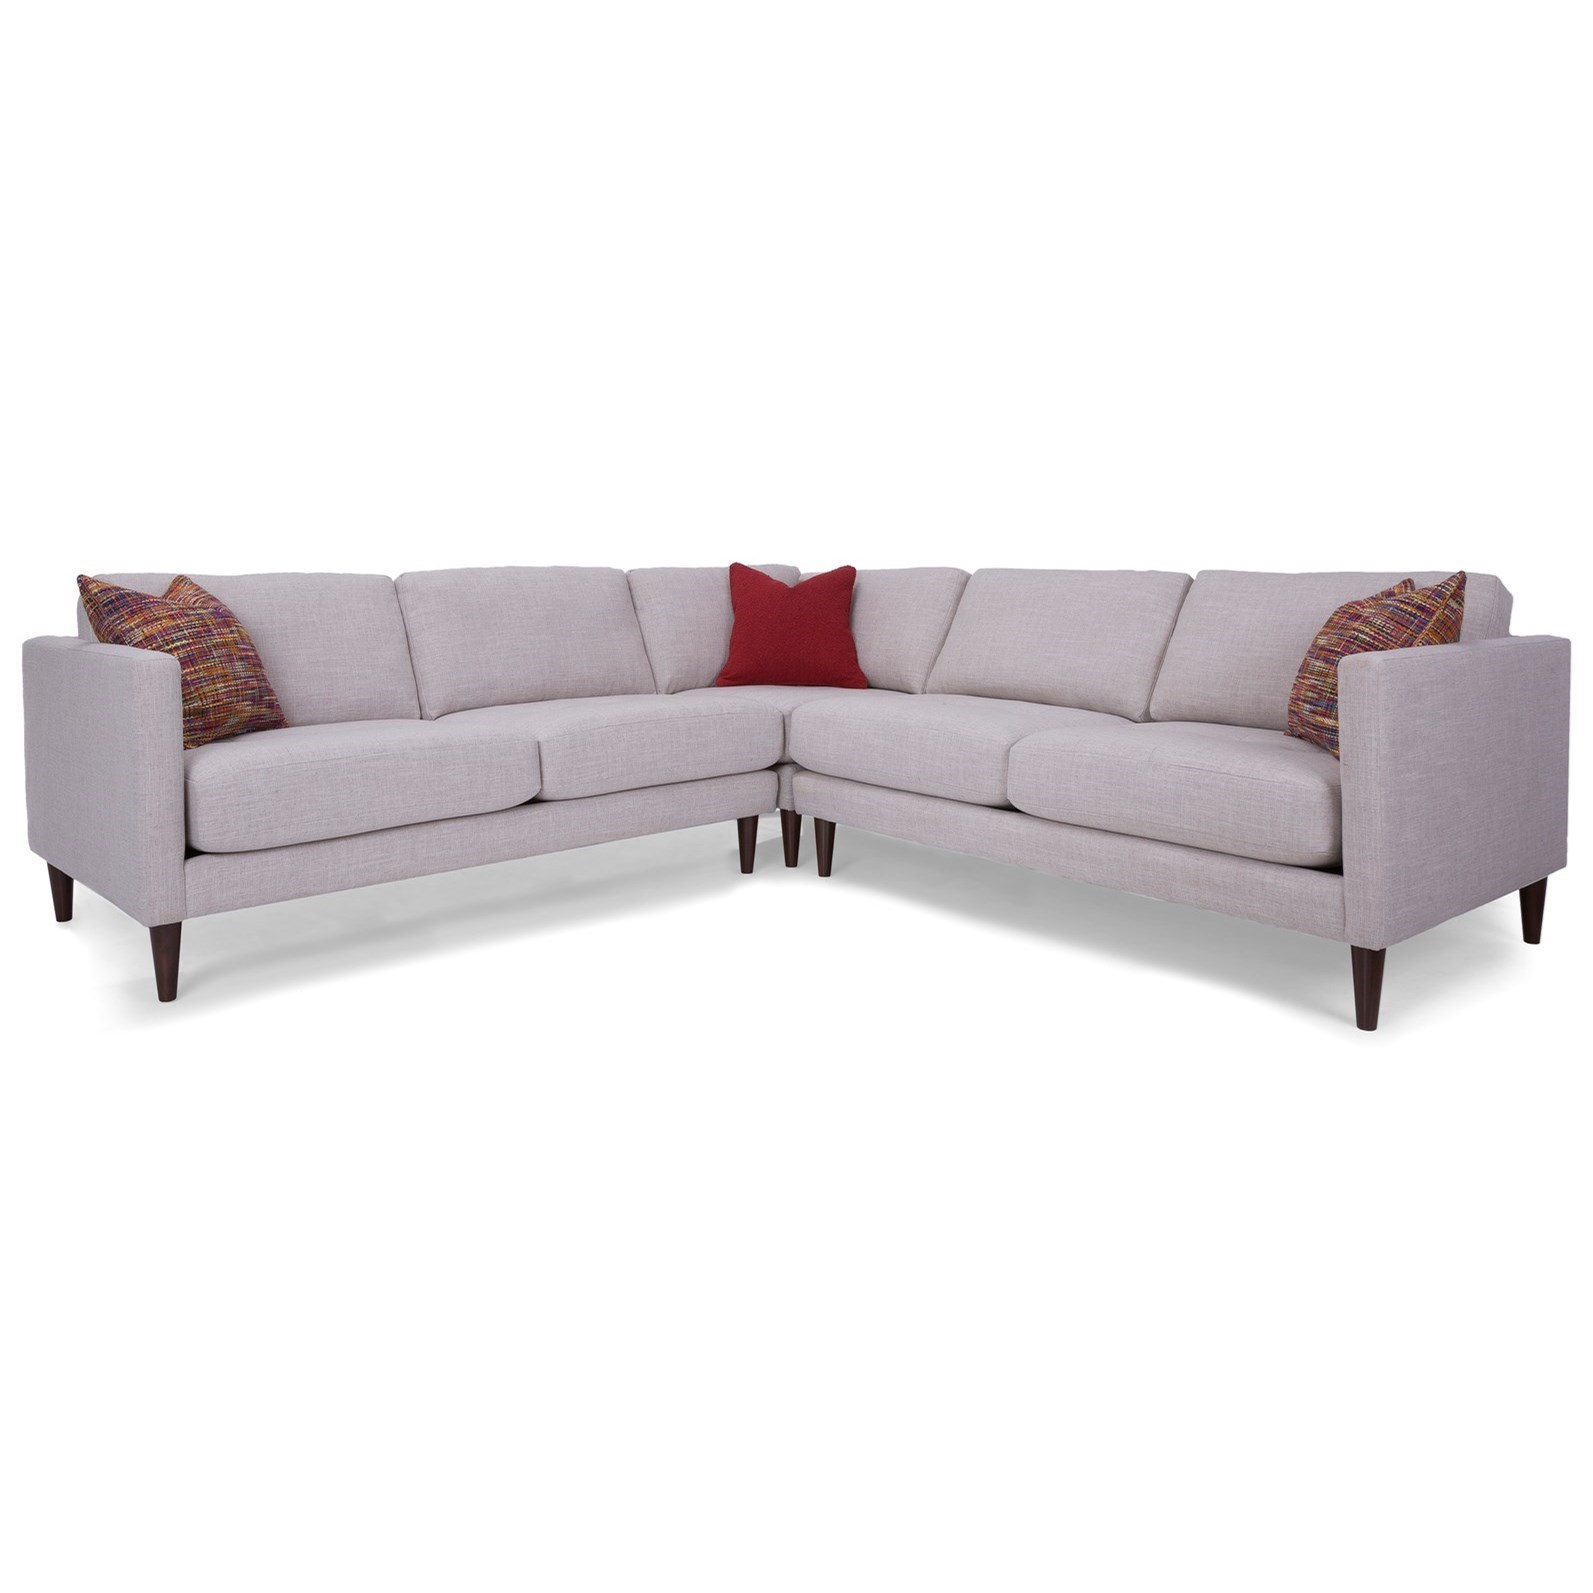 2M1 L-Shaped Sectional by Decor-Rest at Johnny Janosik